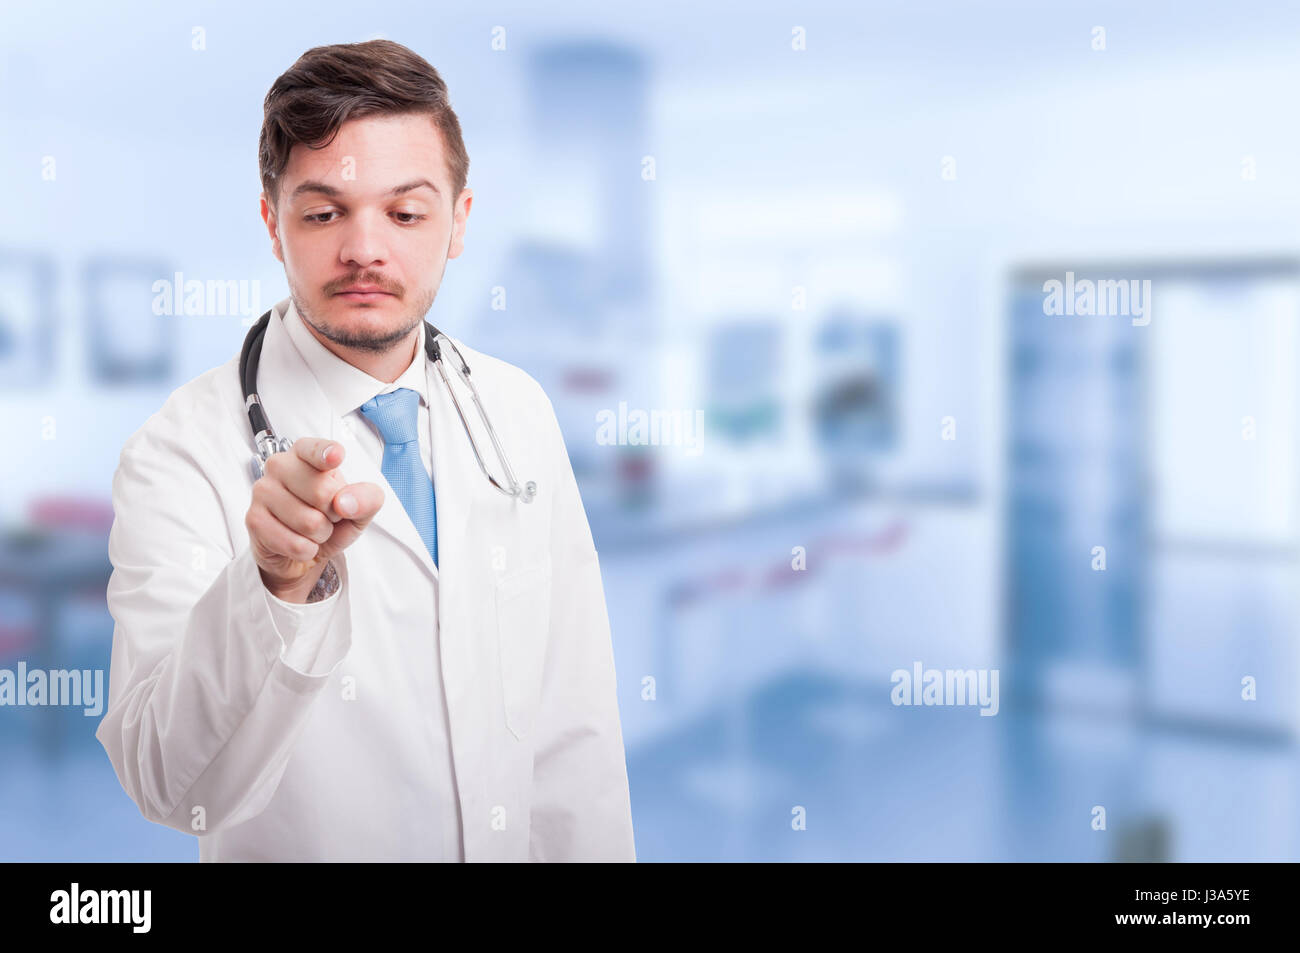 Male medic or doctor with stethoscope working with futuristic screen with copy space - Stock Image